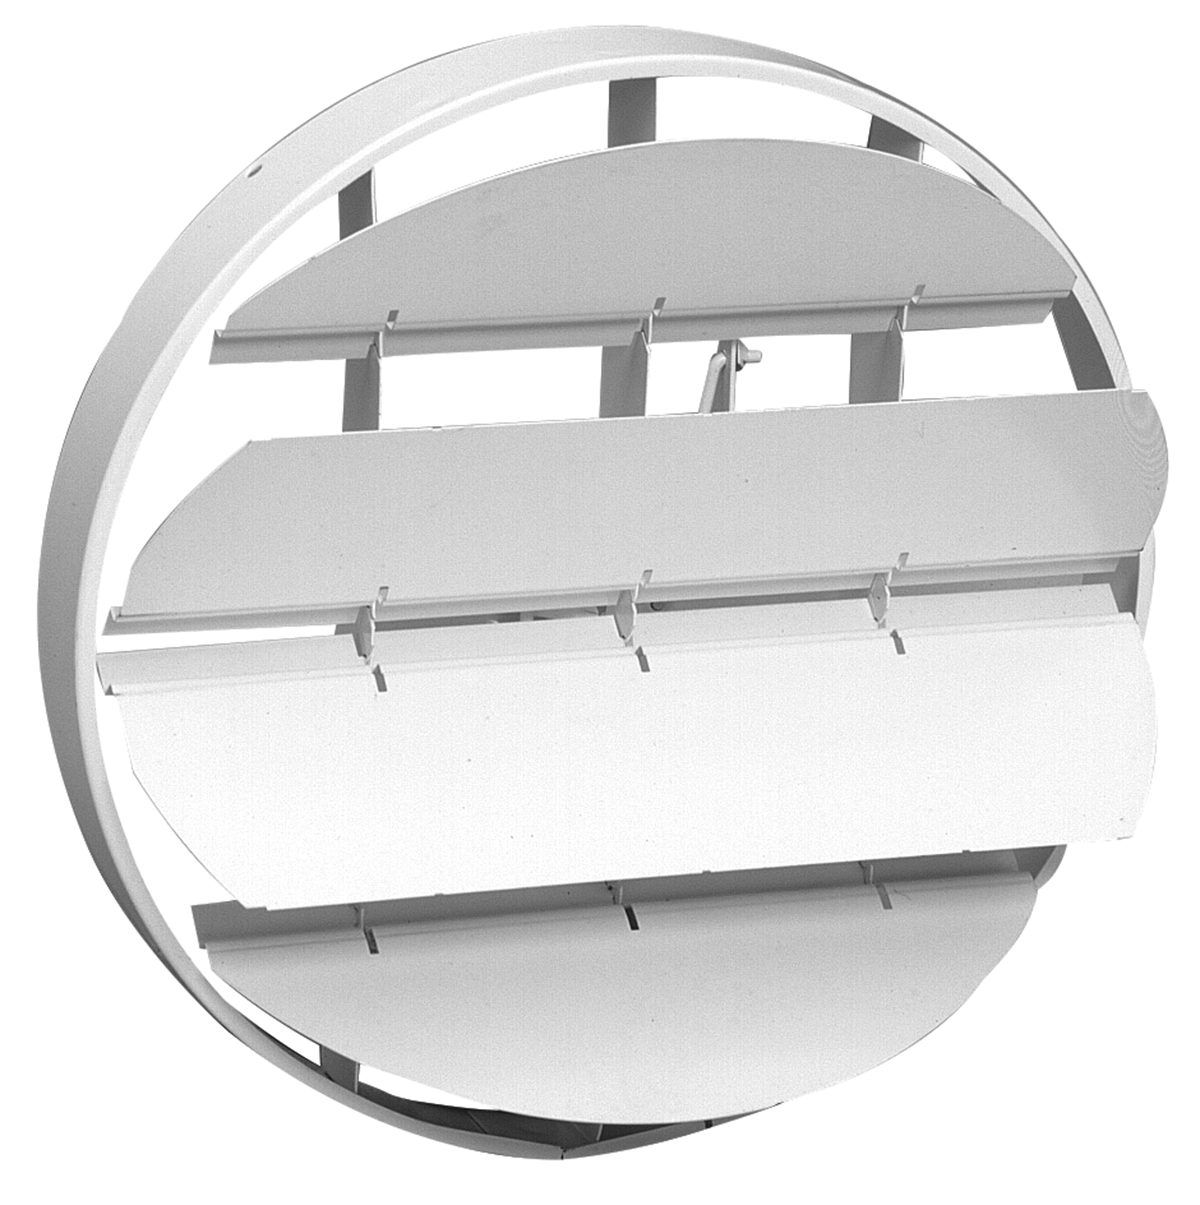 #3B3B3B 19 Steel OBD Duct Mount Damper For #20 Ceiling Diffuser  Recommended 6287 Round Register Vents pics with 1200x1205 px on helpvideos.info - Air Conditioners, Air Coolers and more